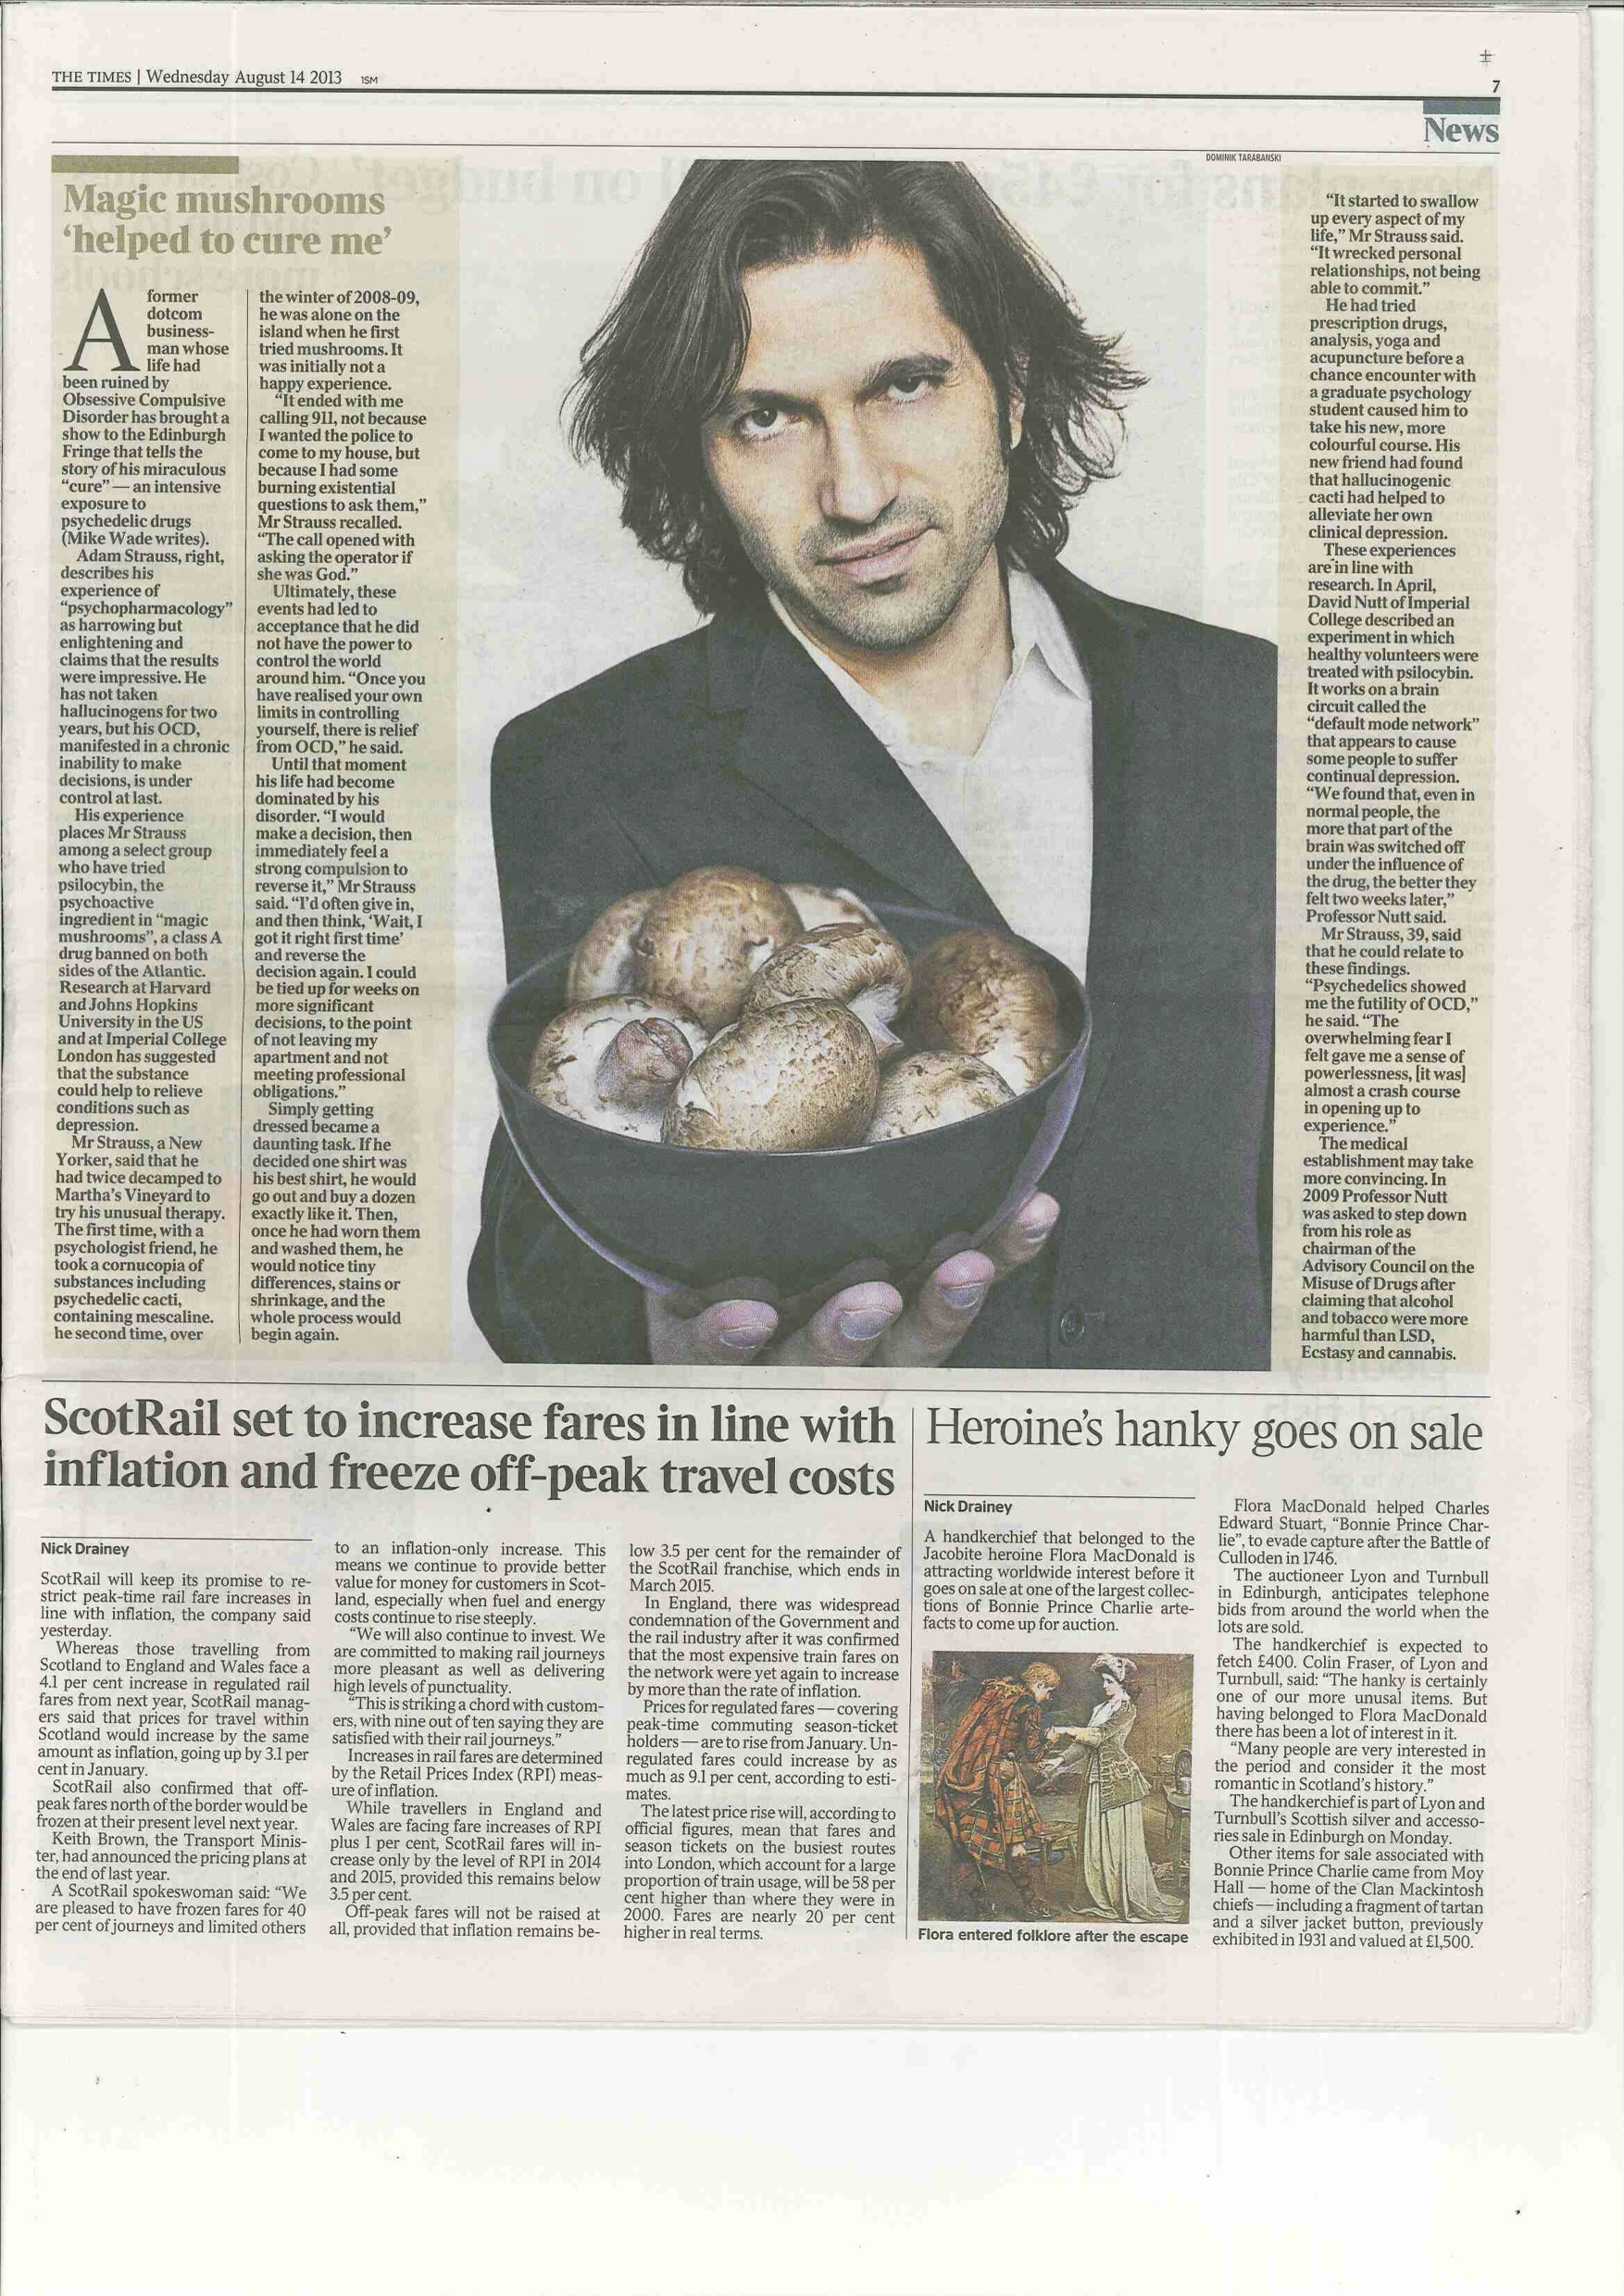 Feature on The Mushroom Cure in the Times (UK) - August 14th 2013